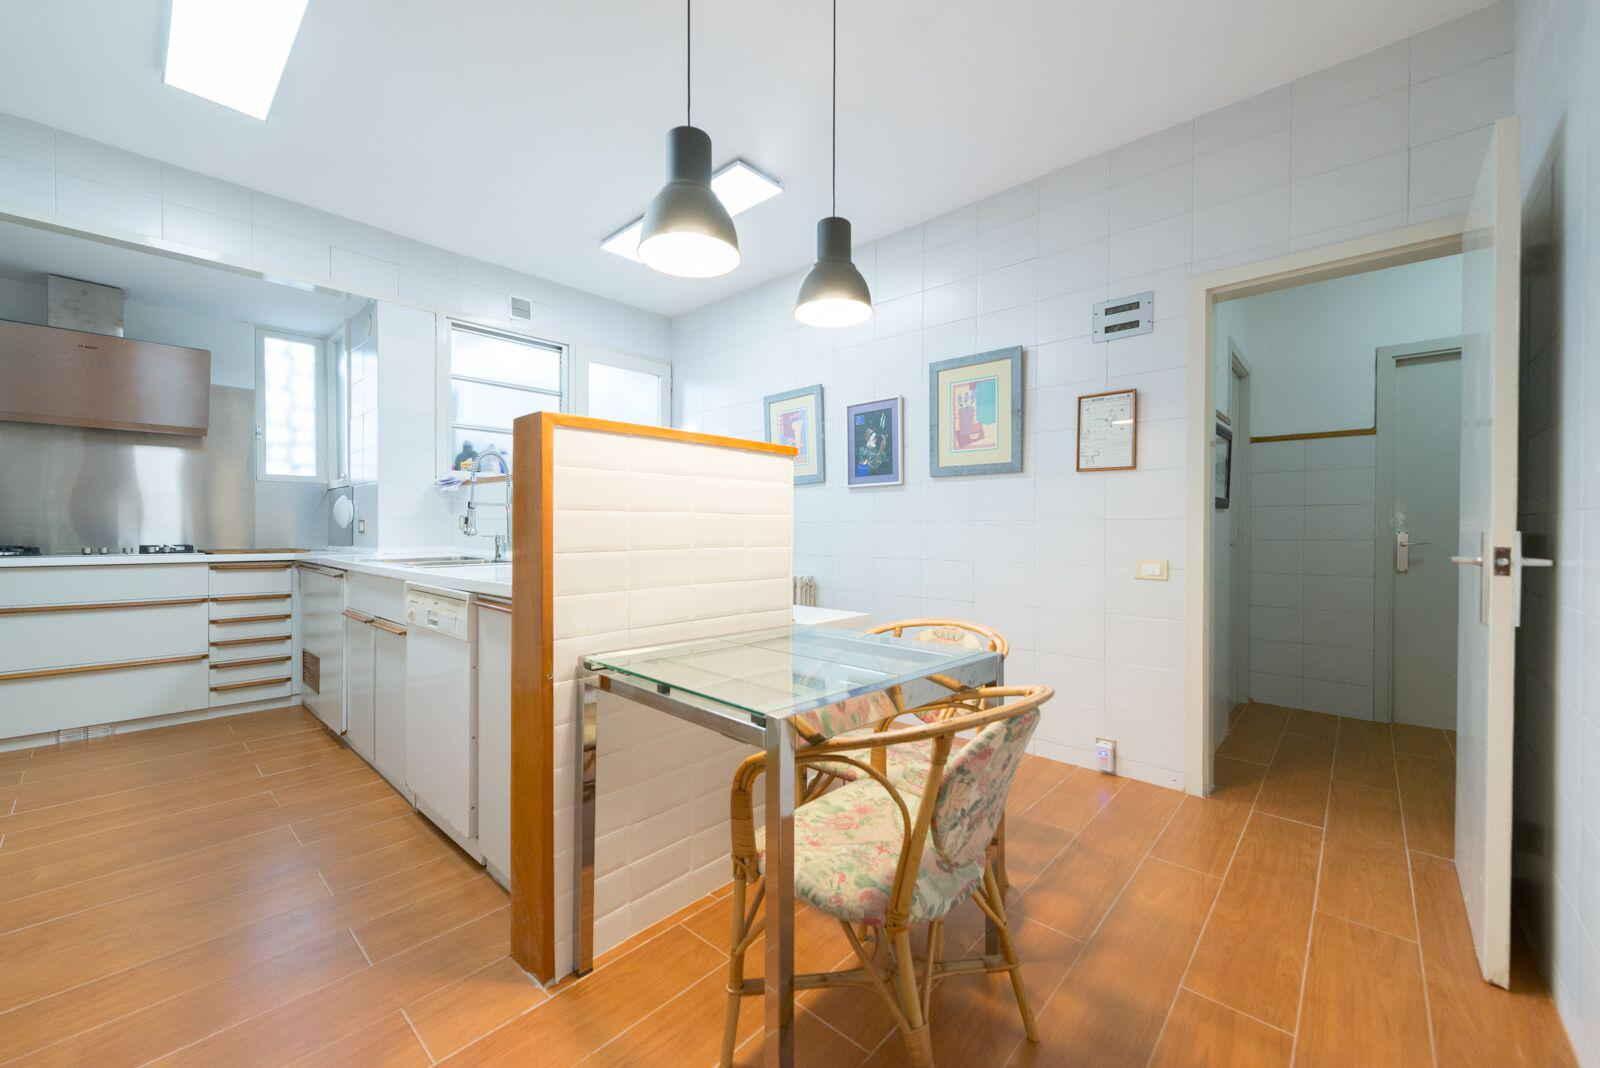 80454 Apartment for sale in Les Corts, Pedralbes 19